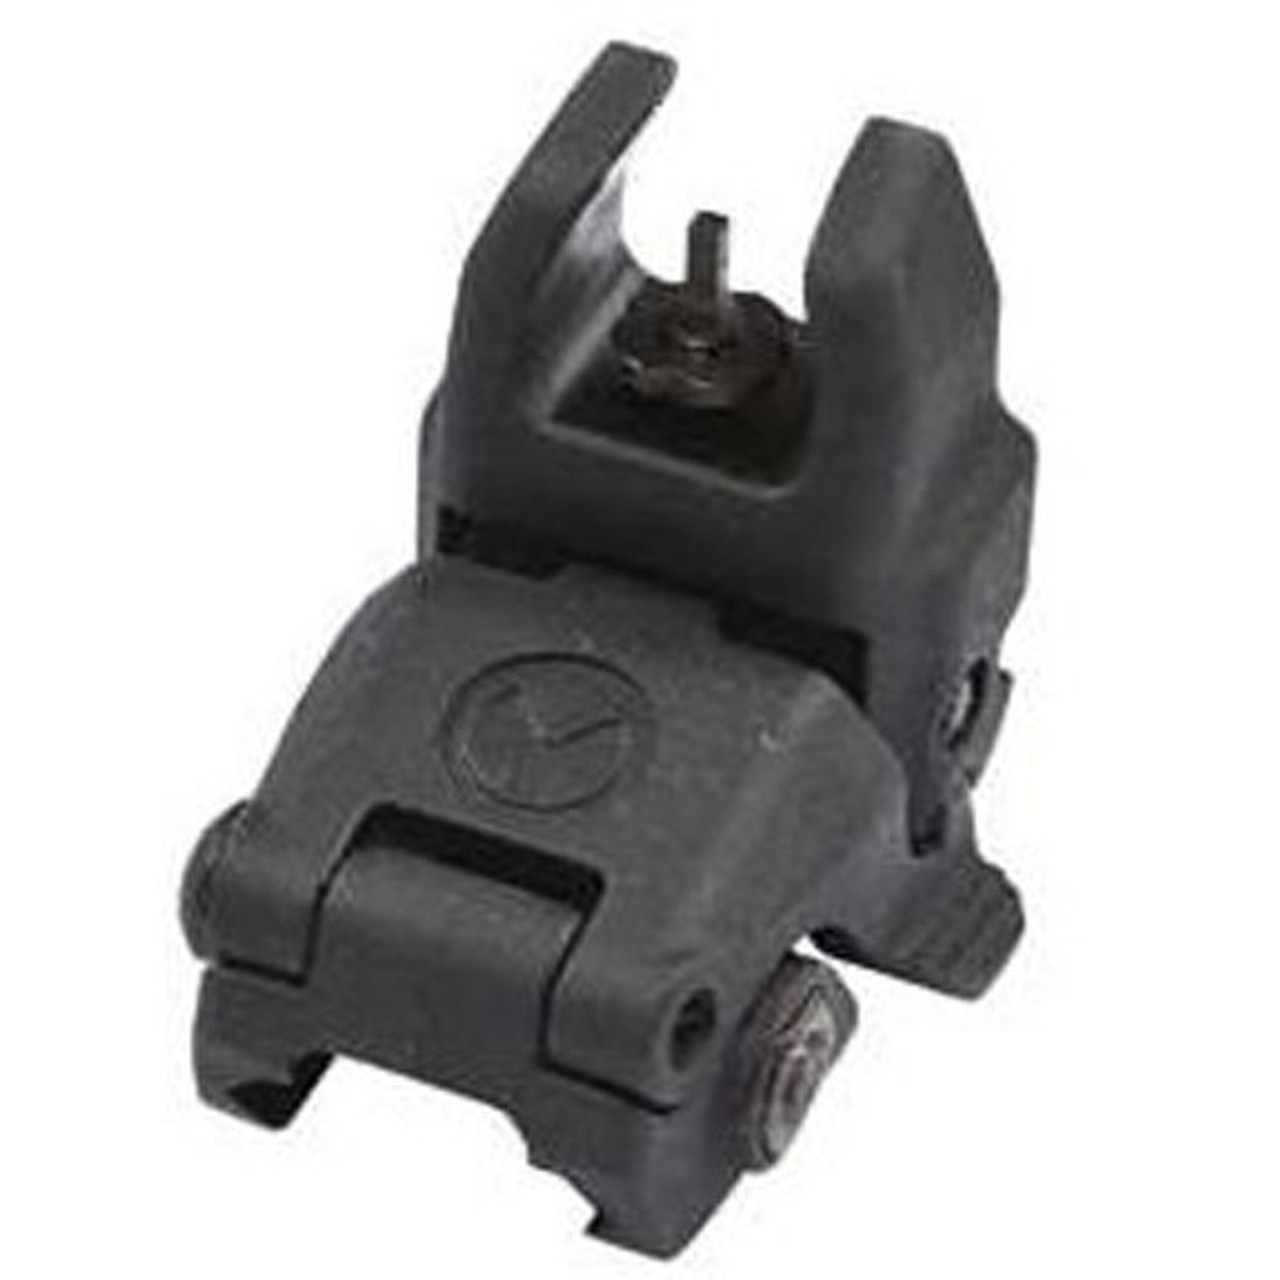 MagPul MBUS Back Up Sight - Front (Black)